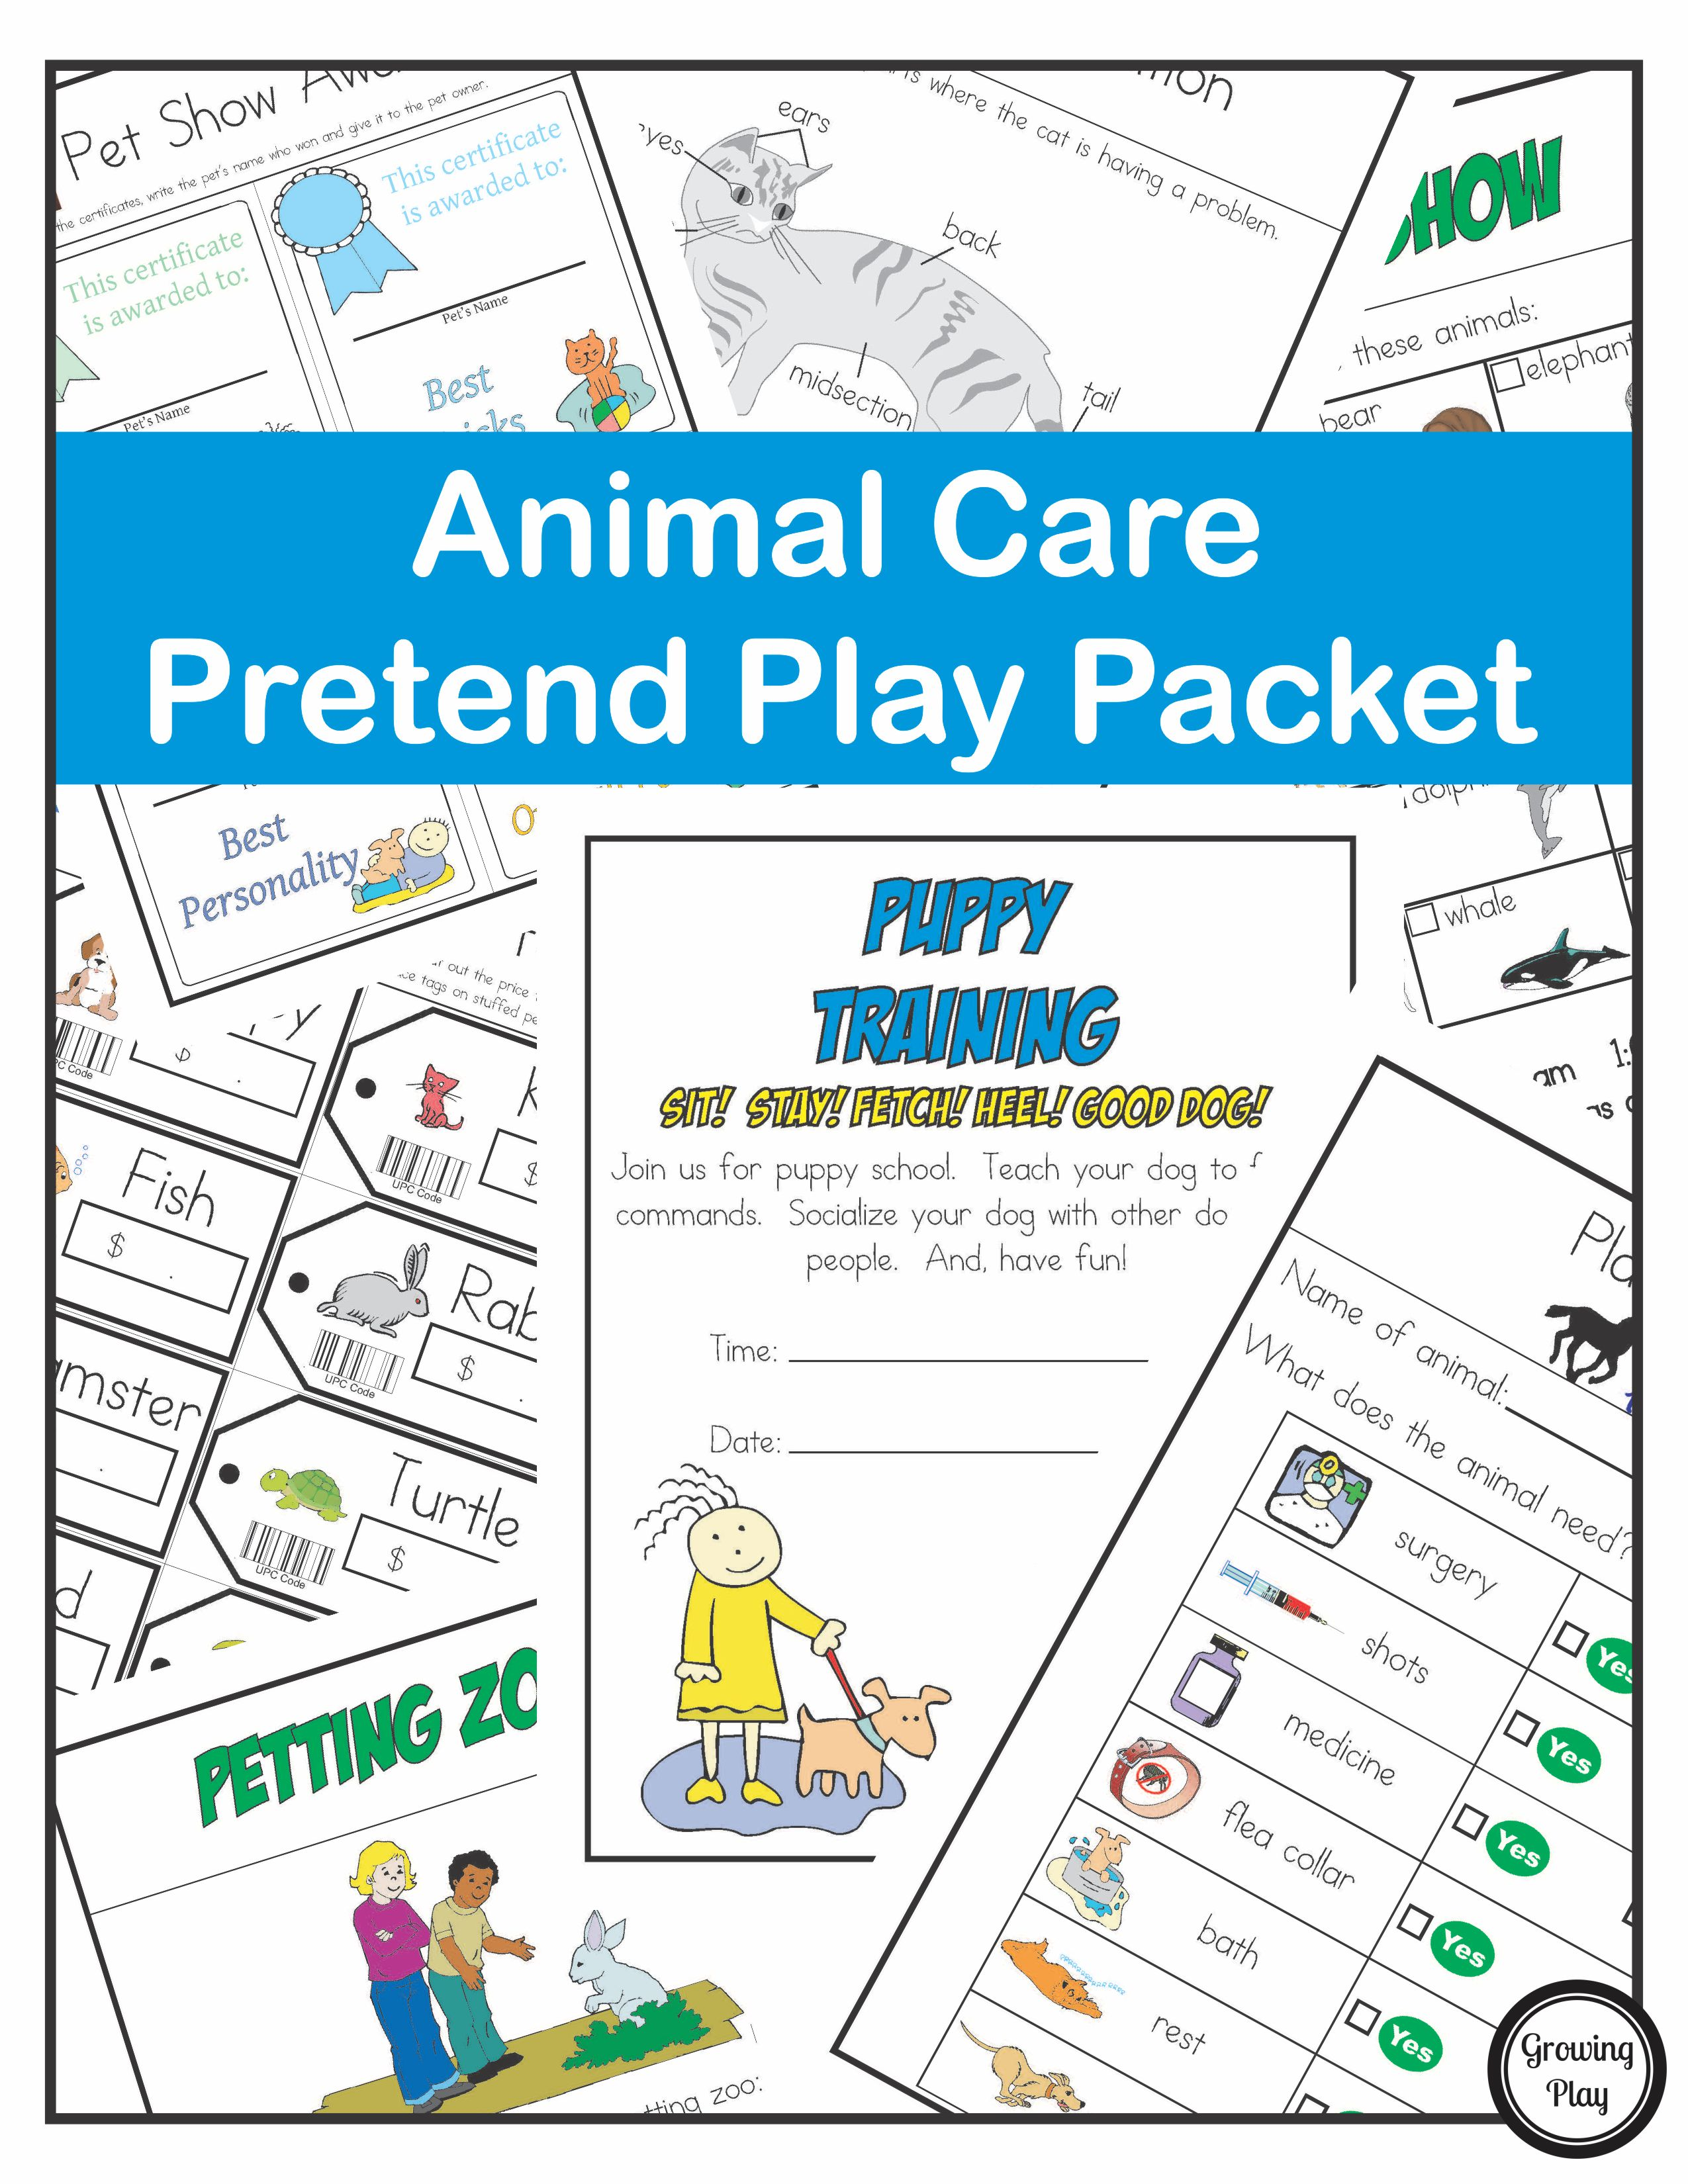 Animal Care Pretend Play Packet